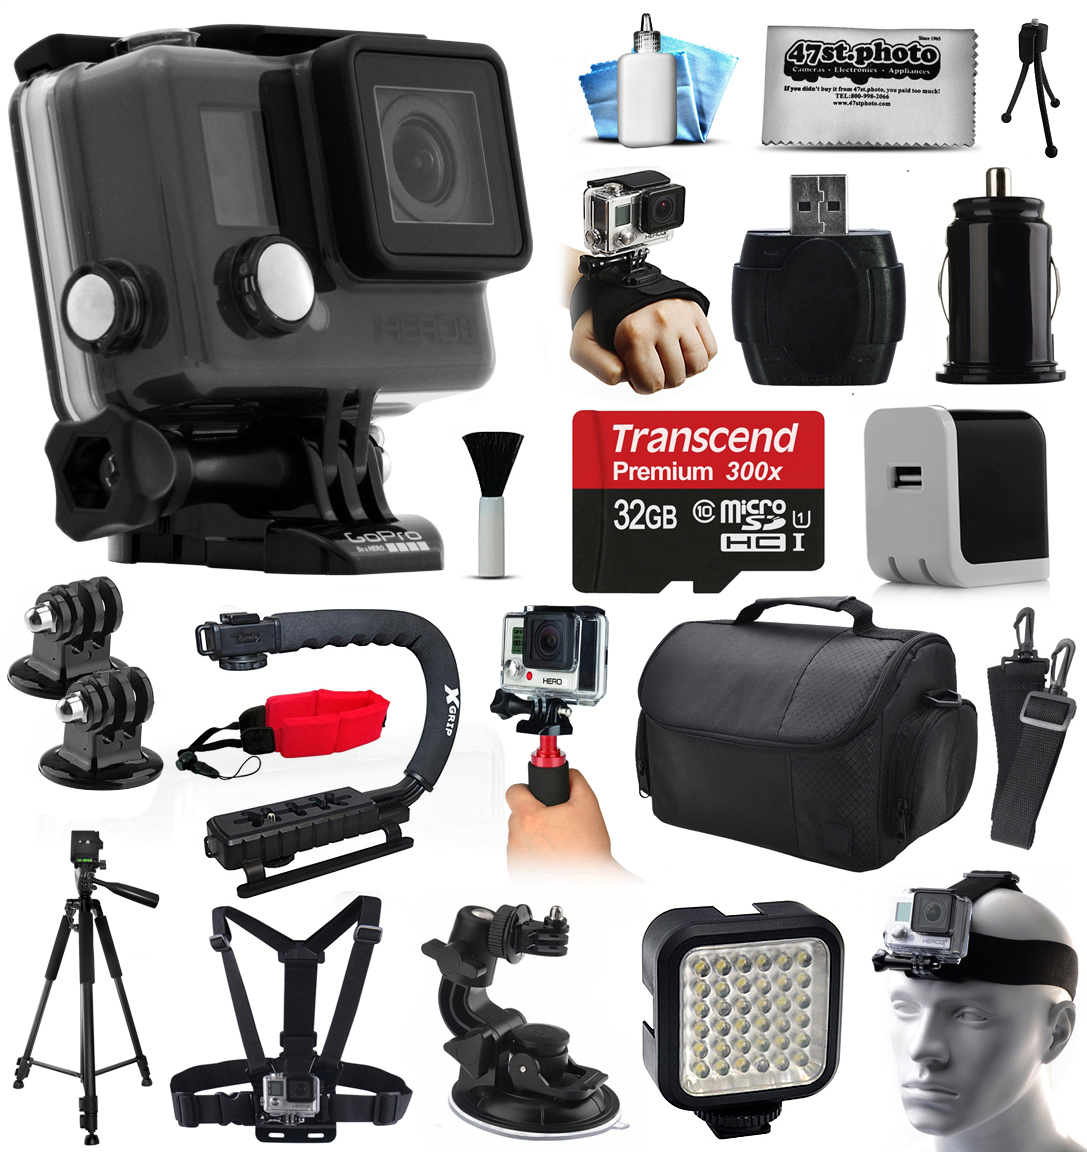 GoPro HERO+ Camera Camcorder (CHDHC-101) with Professional Accessories Kit includes 32GB Card + Case + Tripod + Head & Chest Strap + Home & Travel Charger + Opteka X-Grip + Car Mount + More